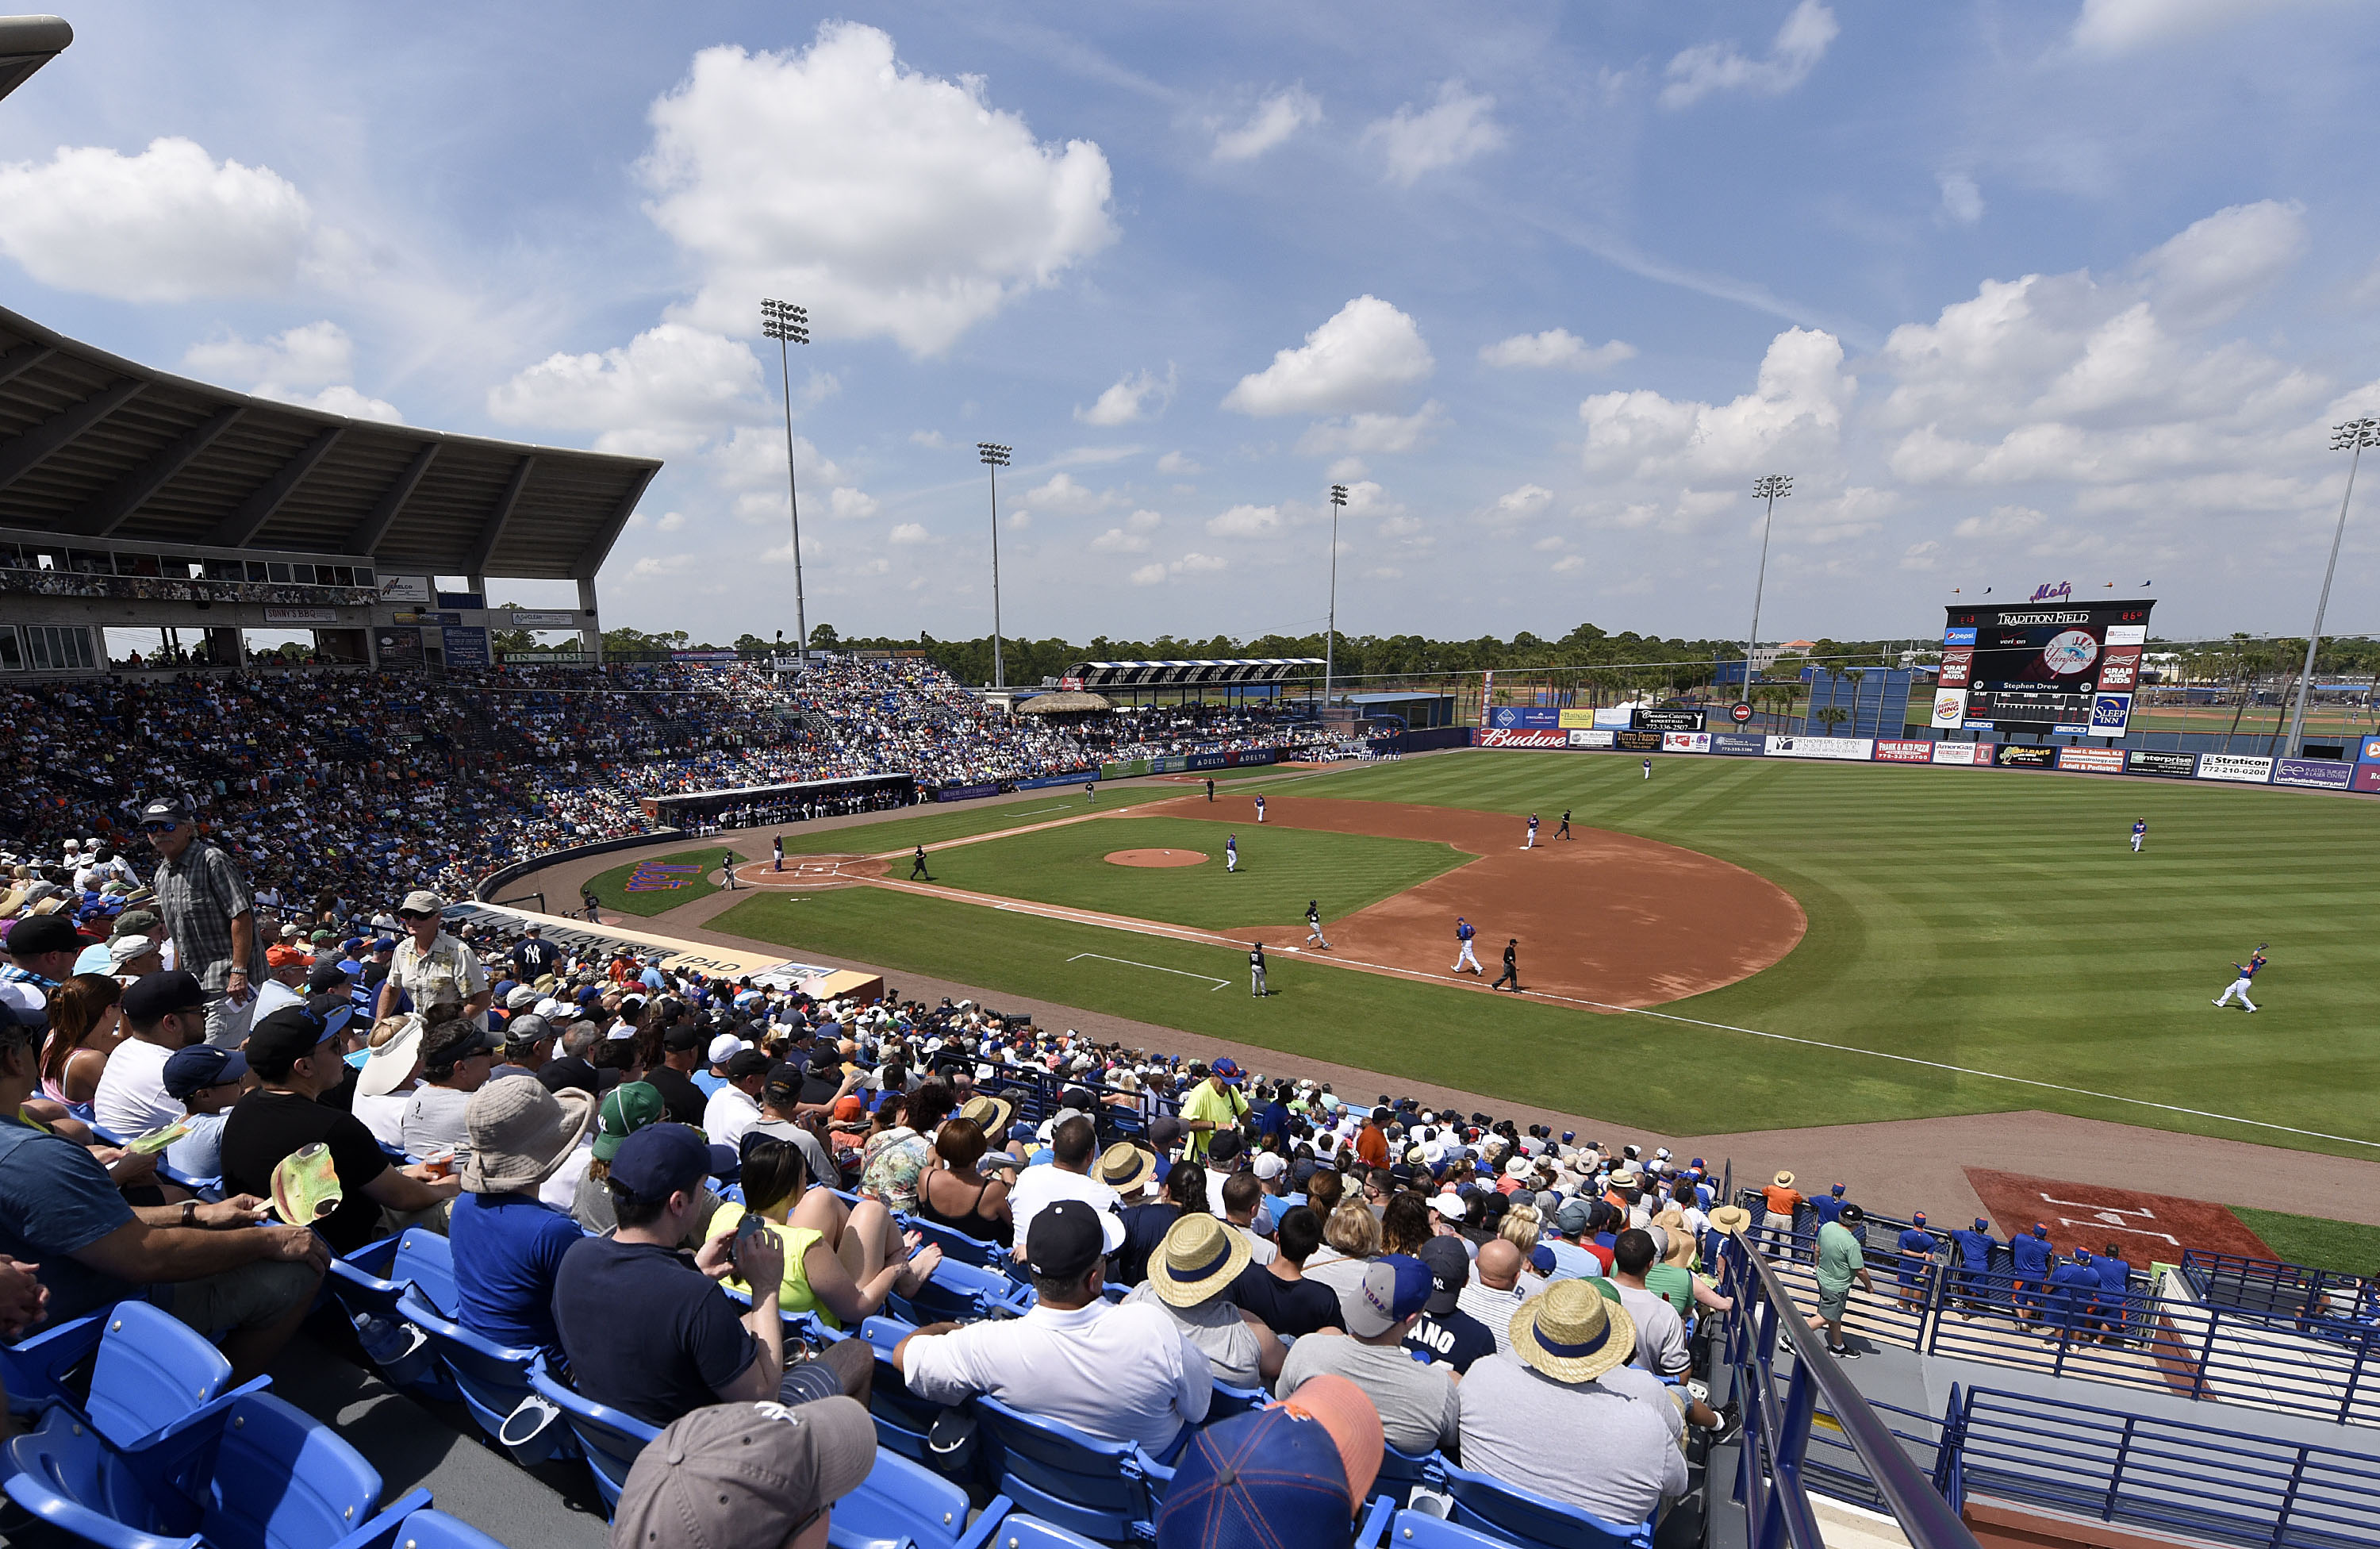 Tradition Field, home to the St. Lucie Mets